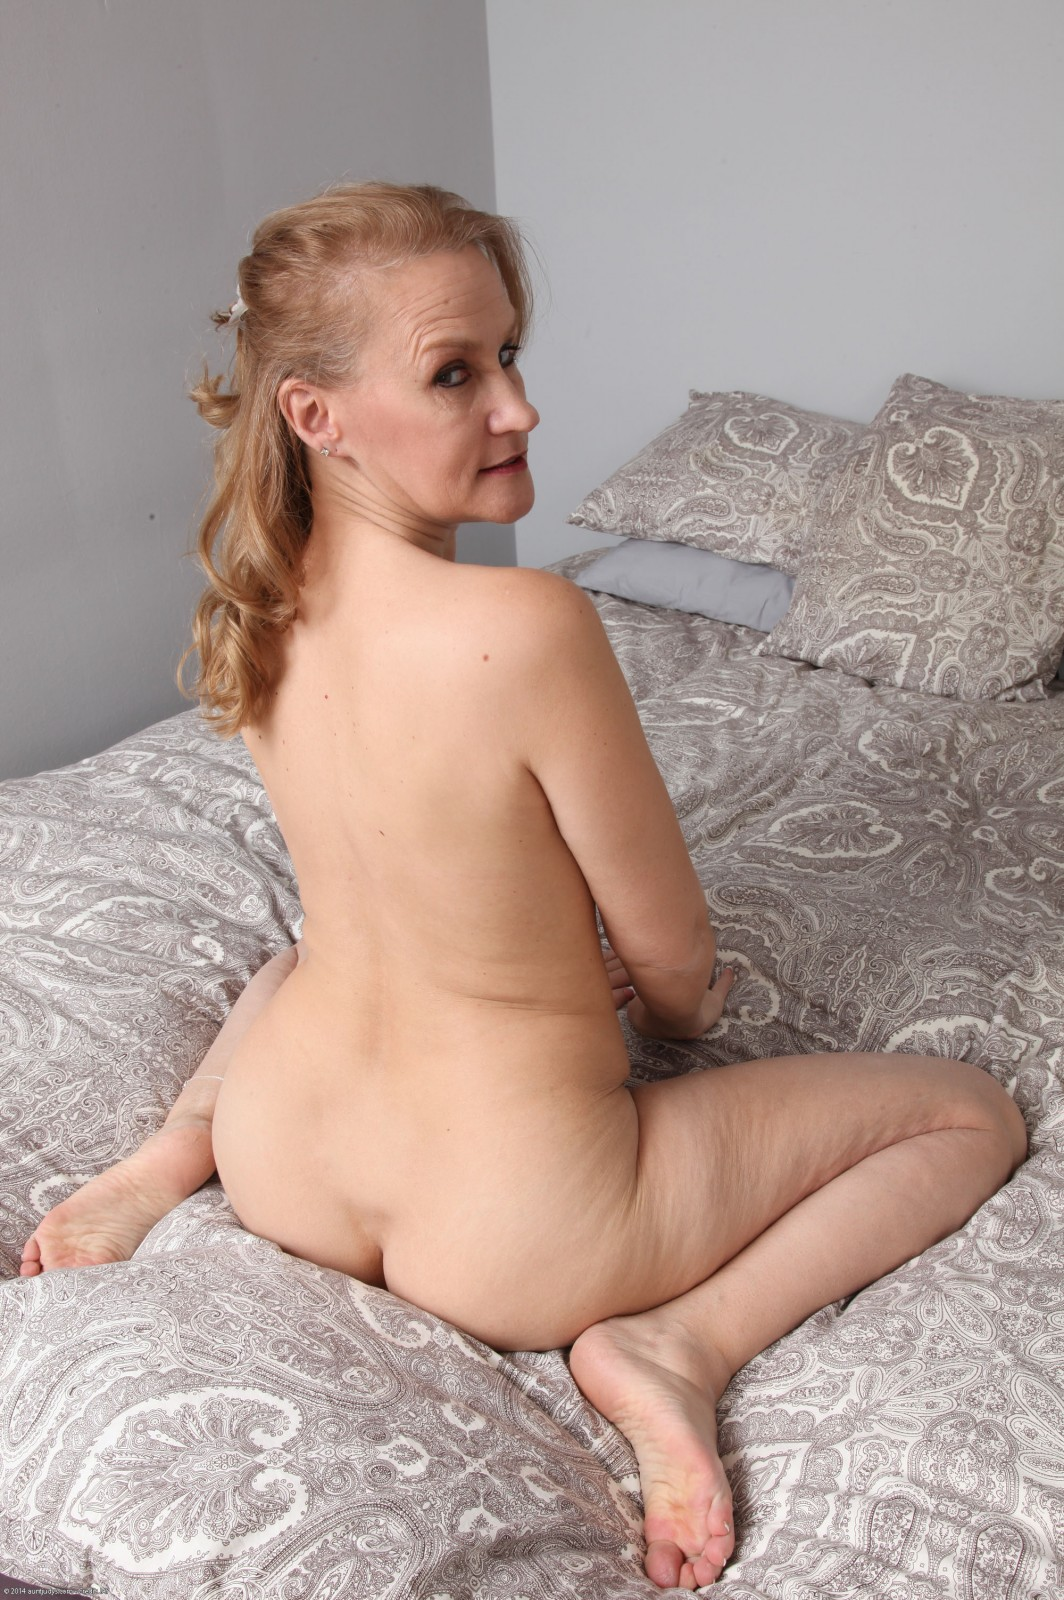 Mature housewife still likes to play with herself 5